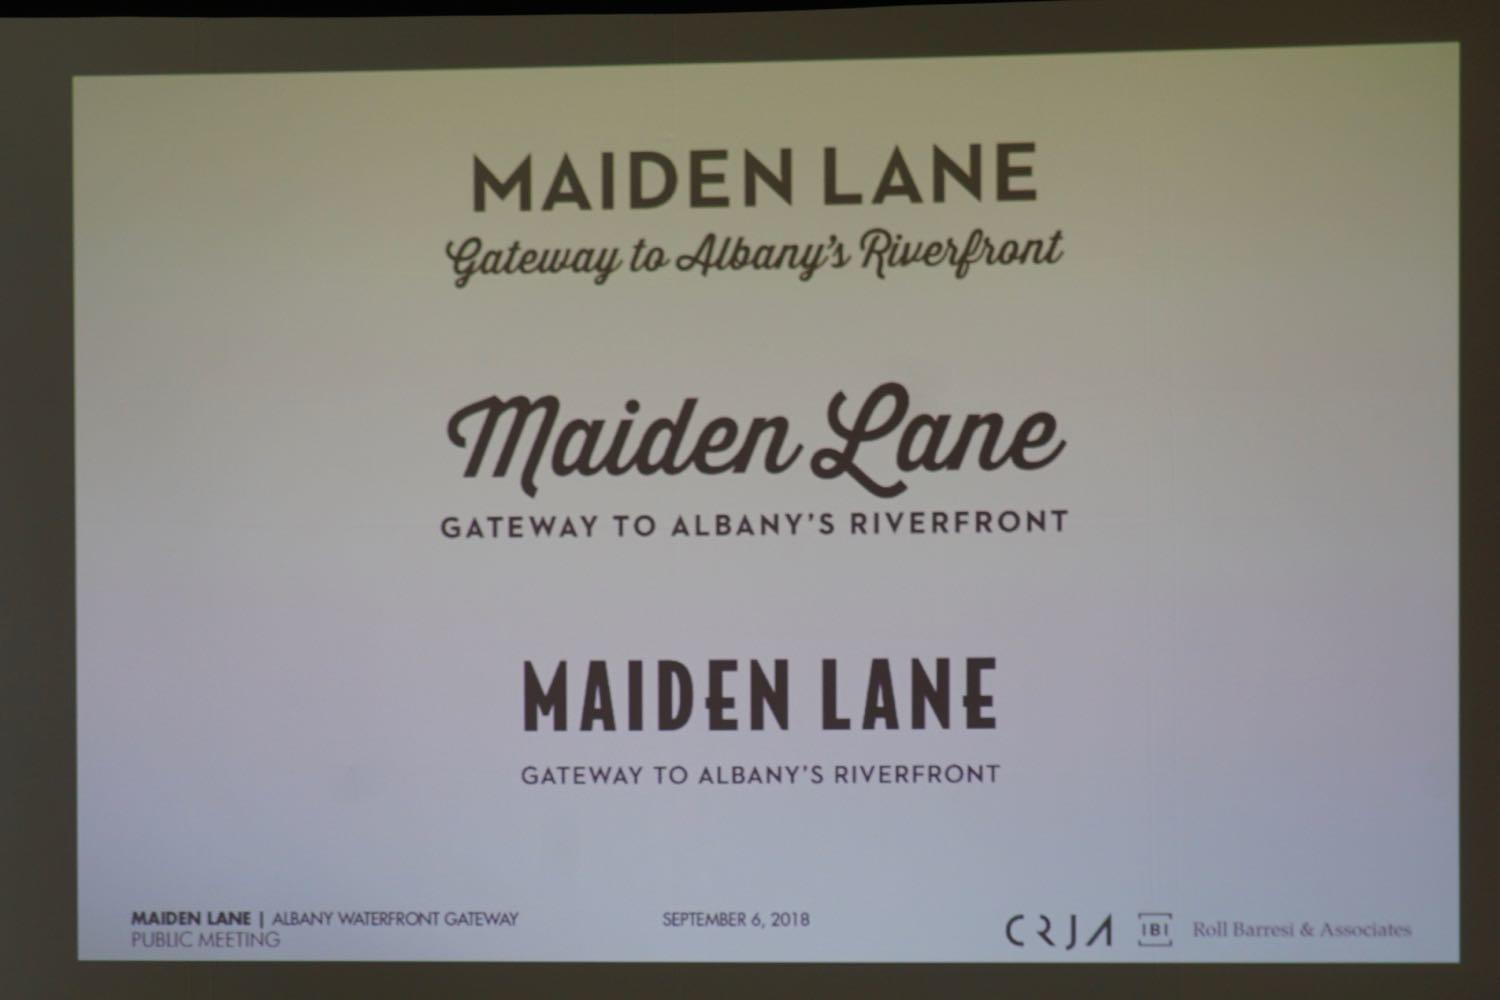 Maiden_Lane_planning_2018-September__14.jpg